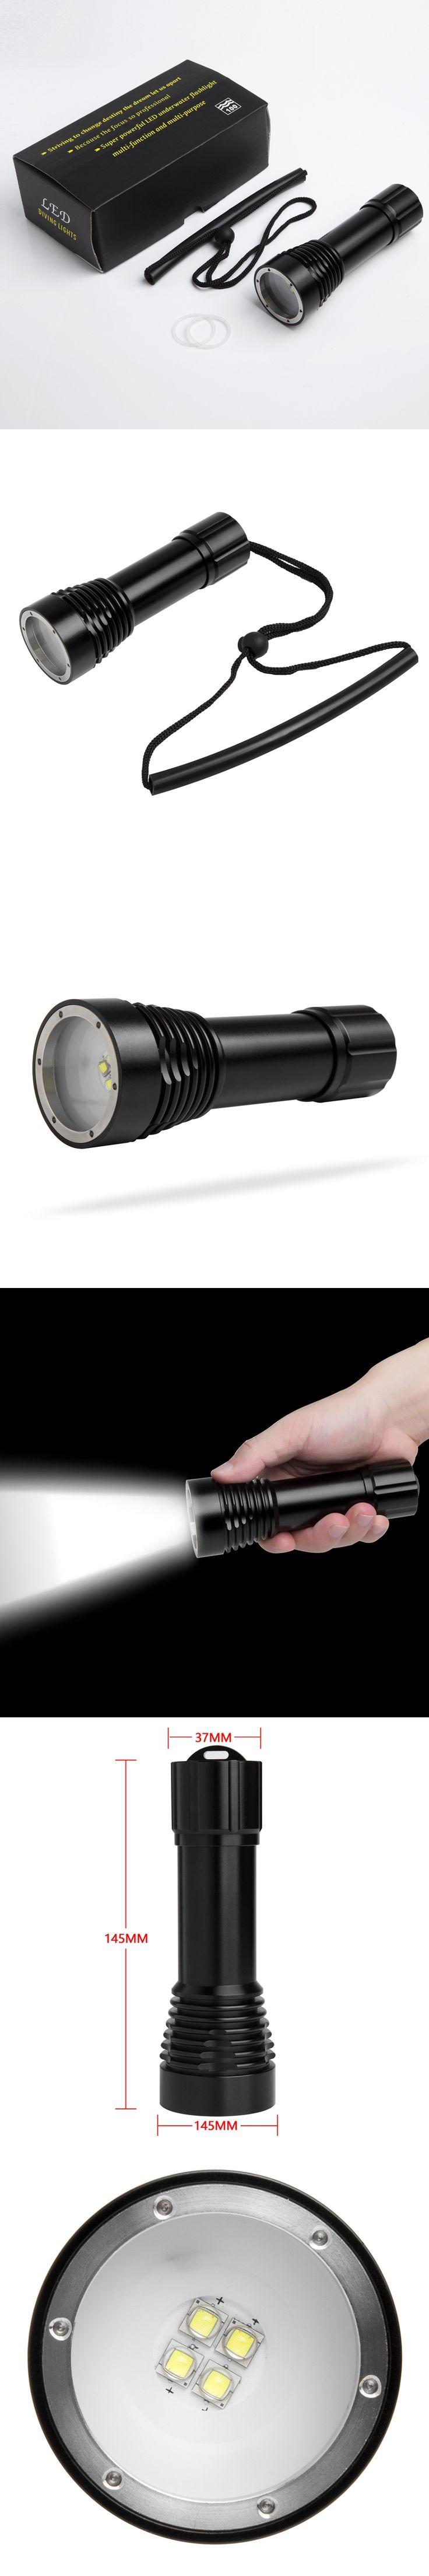 Underwater 100m Diving LED Flashlight Diving Video D34VR 5000LM 4xCree XM-L L2 White Light video Scuba Dive Torch Lamp by 26650